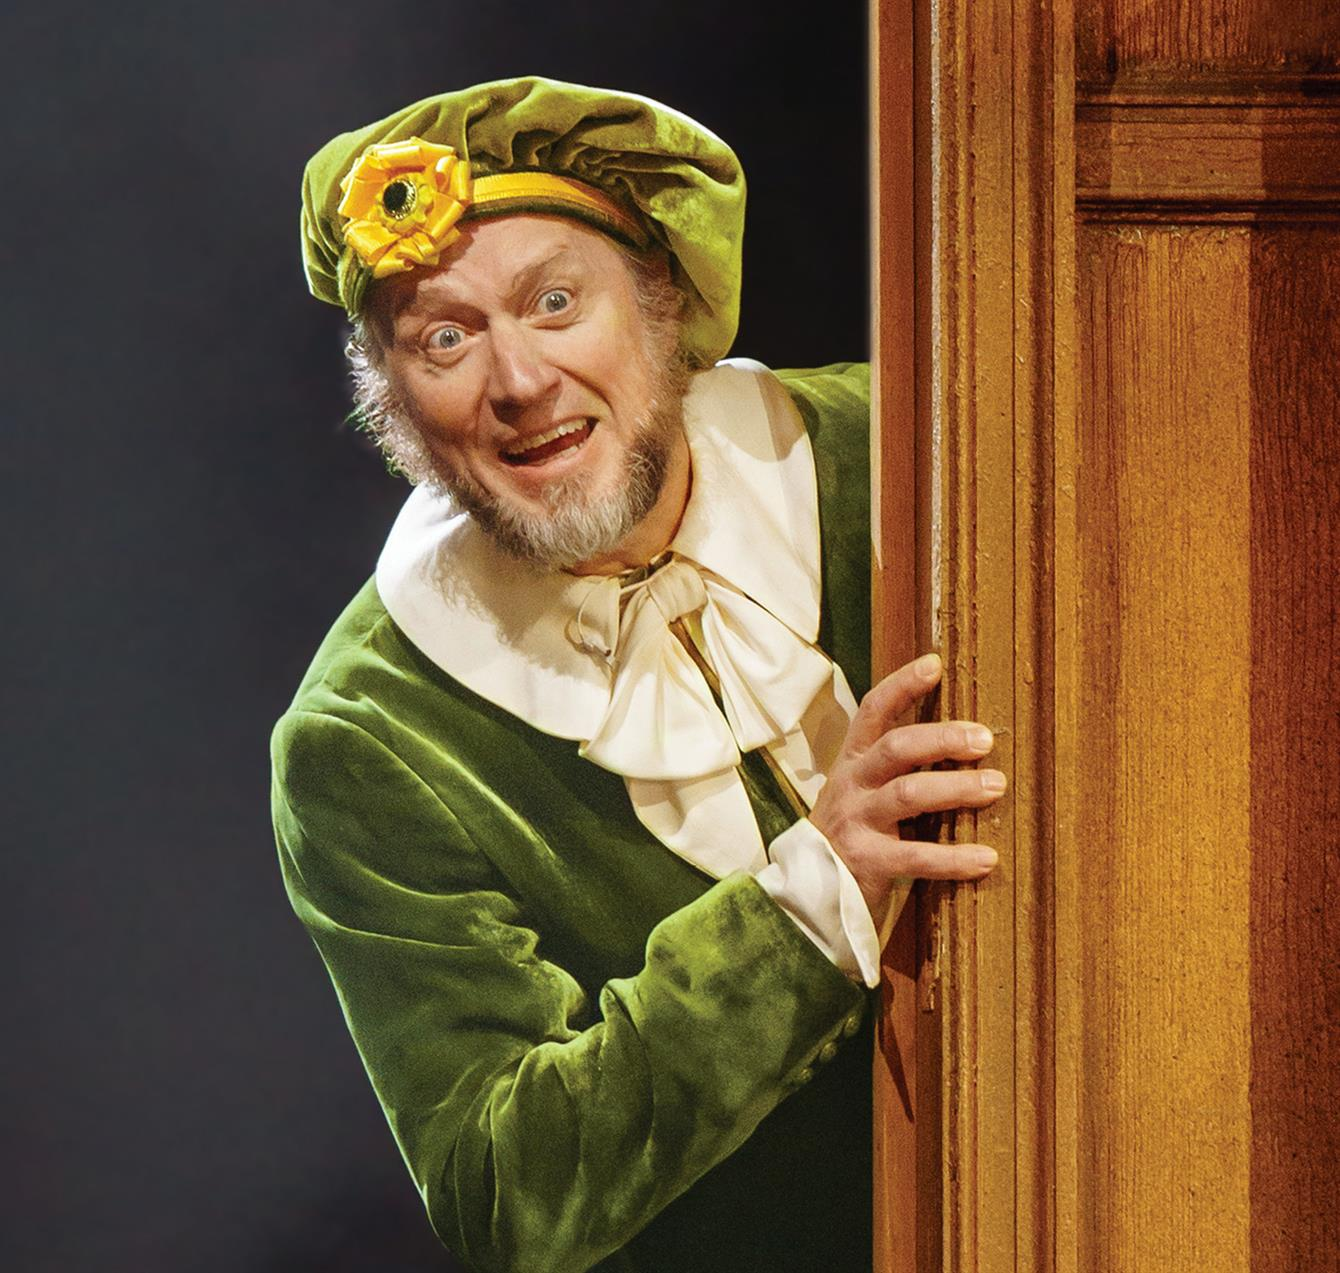 https://cdn2.rsc.org.uk/sitefinity/images/productions/2017-shows/twelfth-night/0021_twelfthnightreview_webimages_social_1440x1368px.tmb-gal-1340.jpg?sfvrsn=1